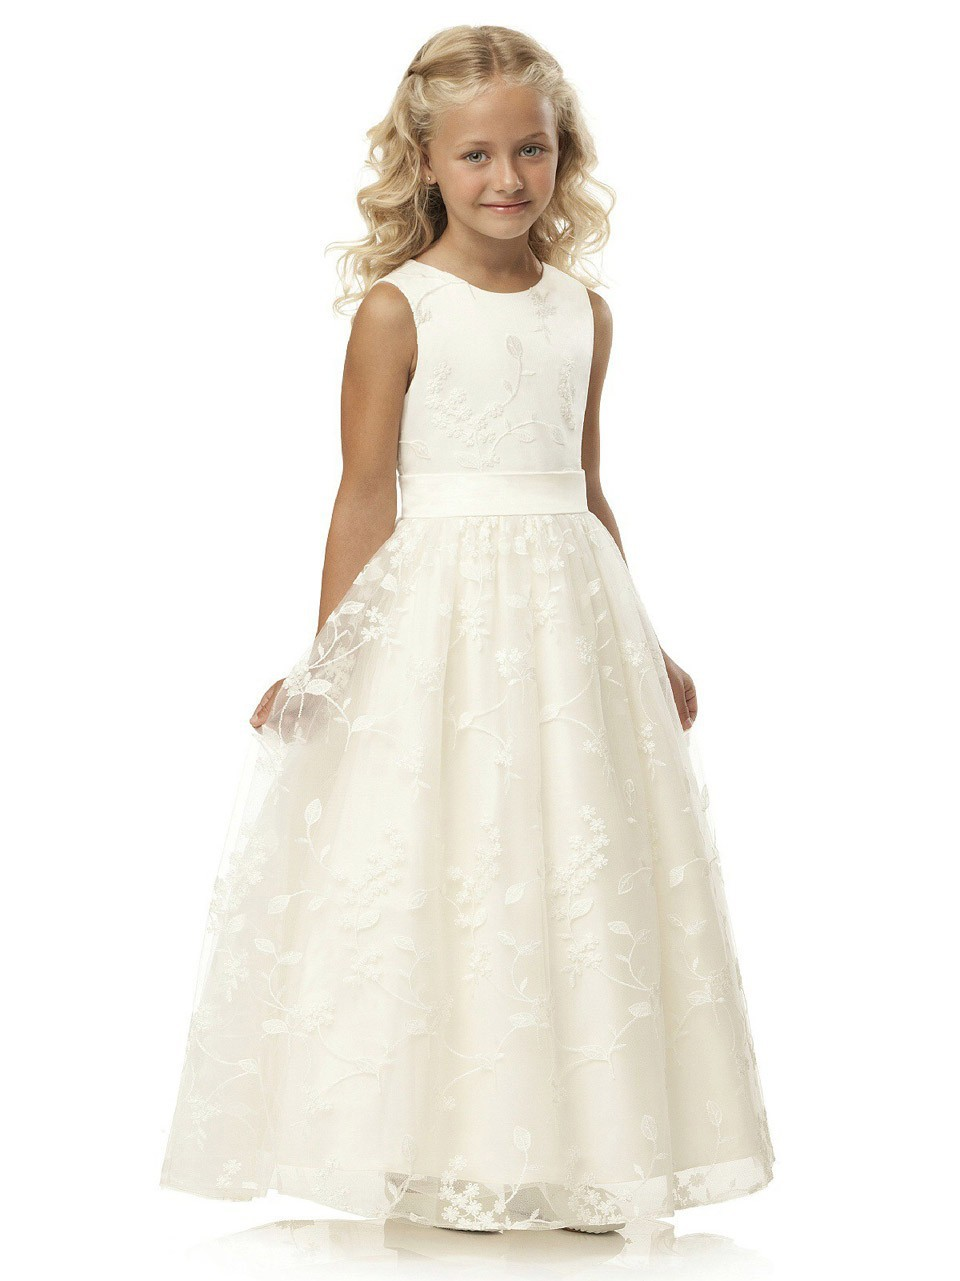 New Arrival Simple Vestidos Primera Comunion 2016 Ankle Length A-Line Lace Sleeveless O-Neck First Communion Dresses for Girls 2016 new arrival casual draped a line dress clothes with regular crew neck knee length sleeveless for baby girls kids